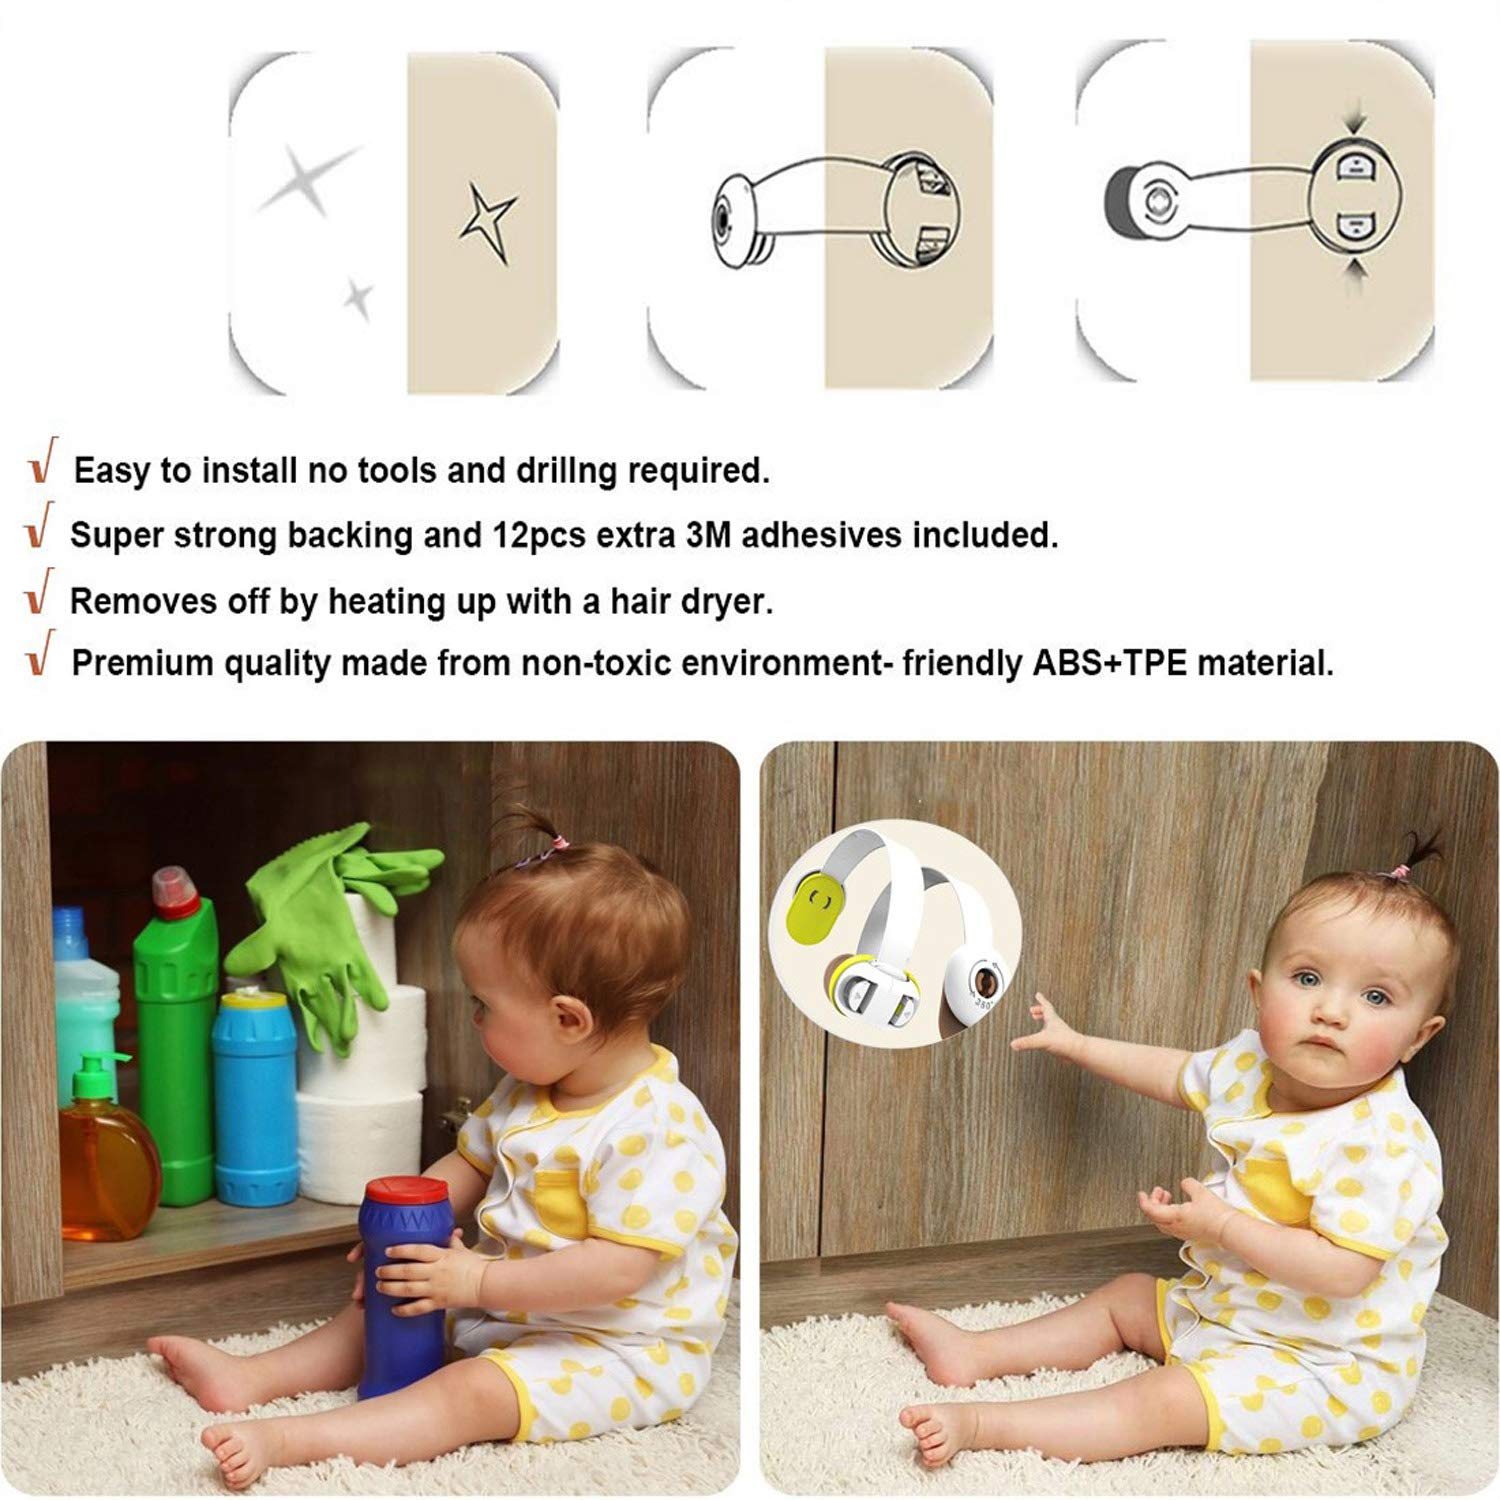 Toilet Seat Child Safety Cupboard Locks Pack of 6,Baby Proof Cabinets Drawers Fridge and Oven Uses 3M Adhesive with Latch System Appliances Tools Not Required